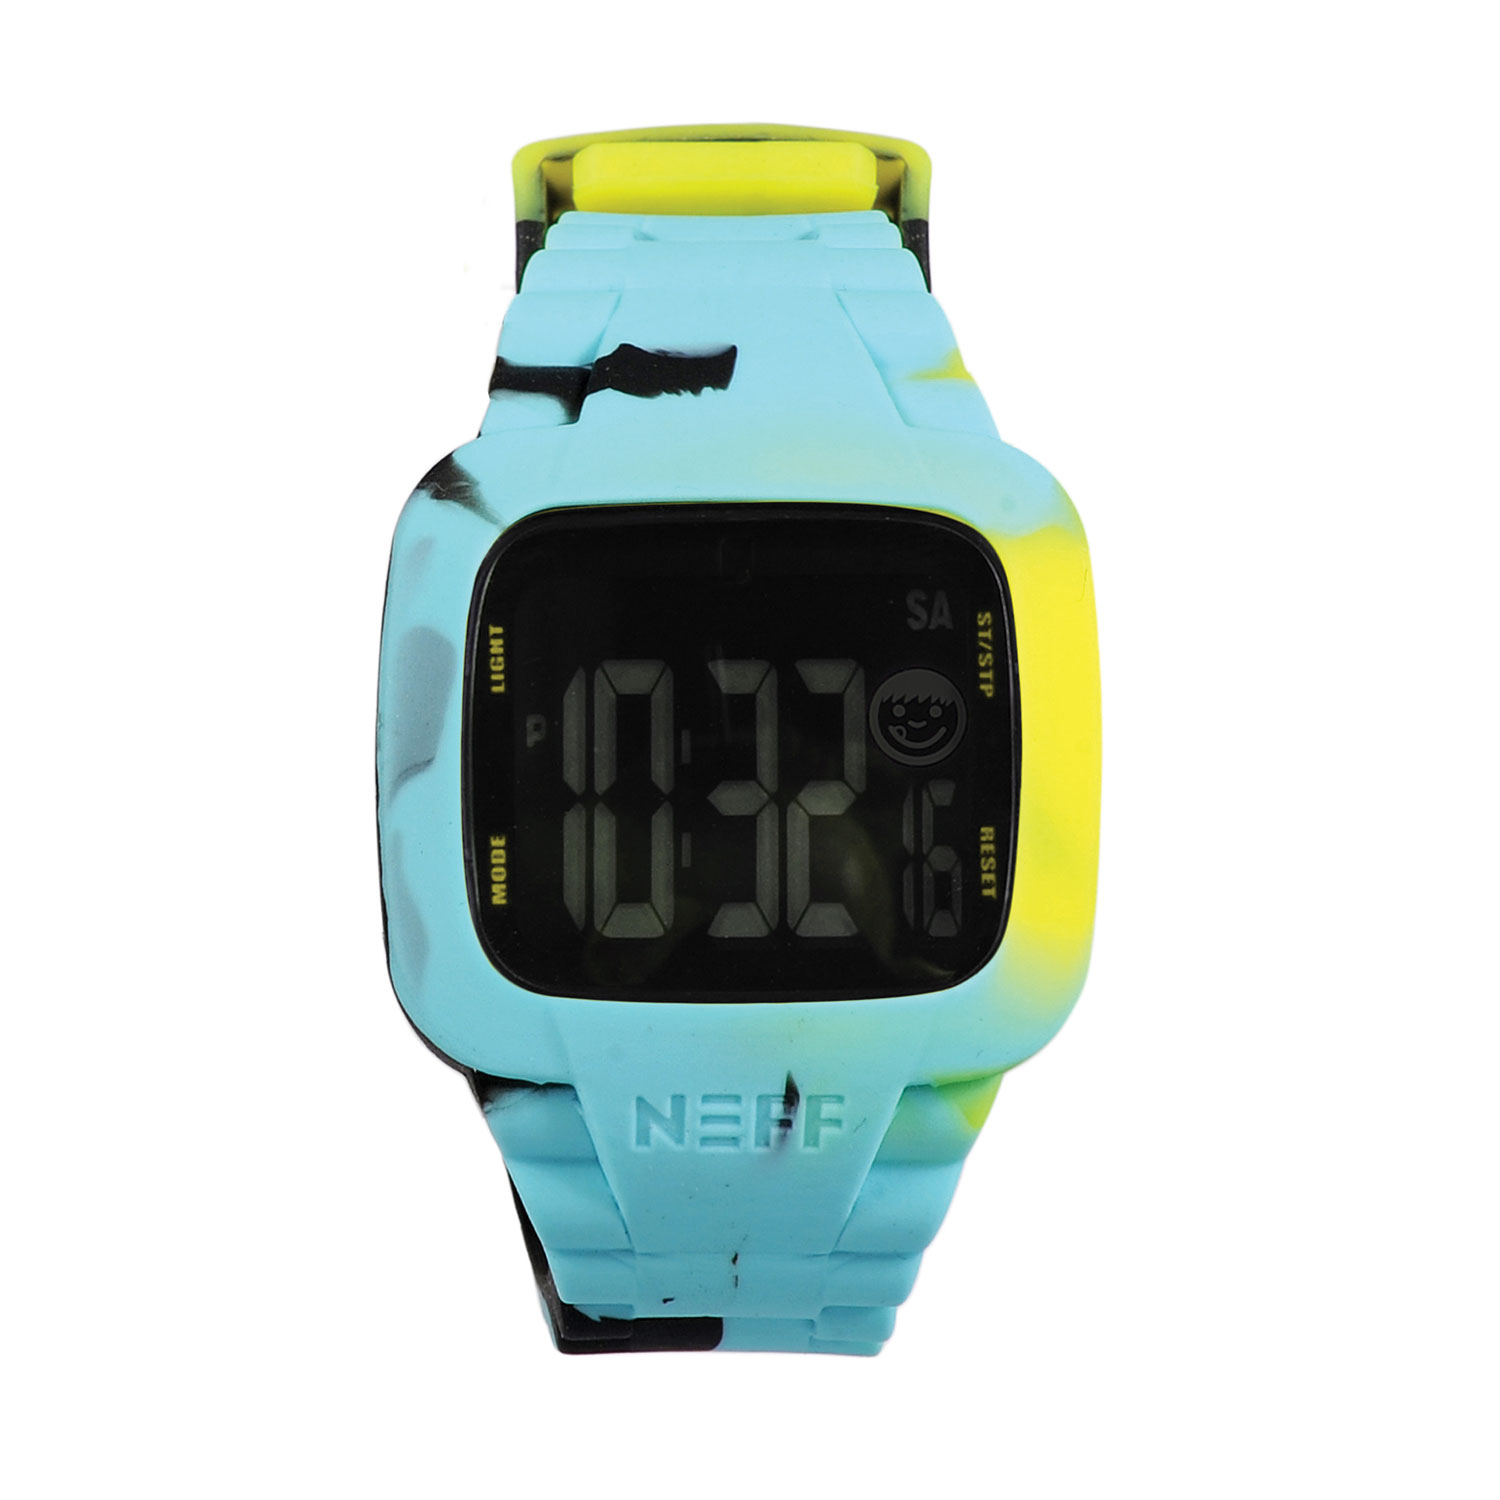 Skateboard Neff Steve Watch Tennis Camo - $29.95